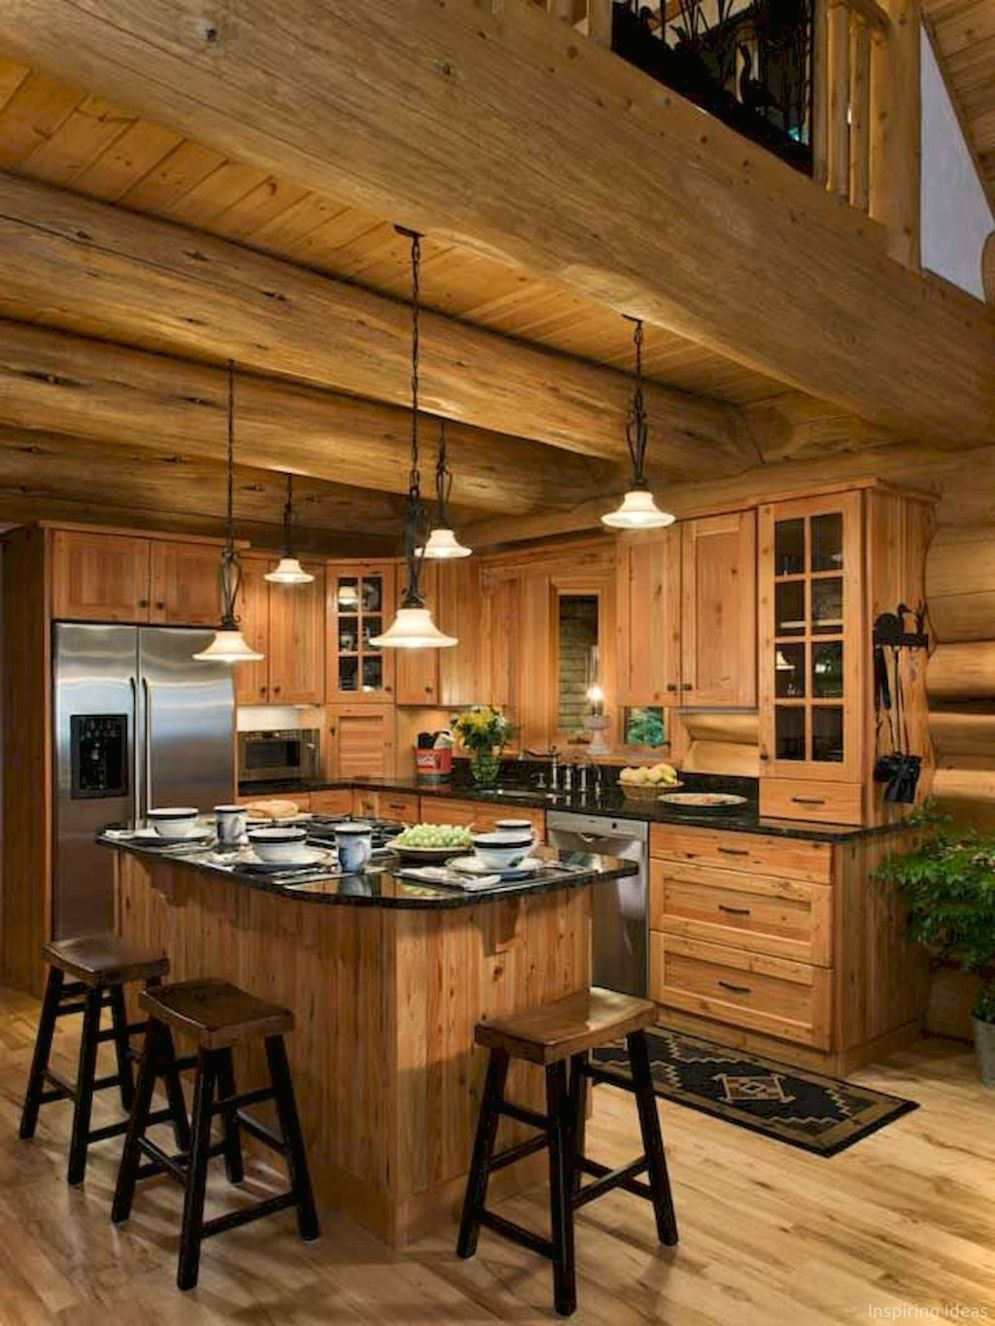 40+ Kitchen Ideas Giving the Warm Cabin Designs in Amazing ...